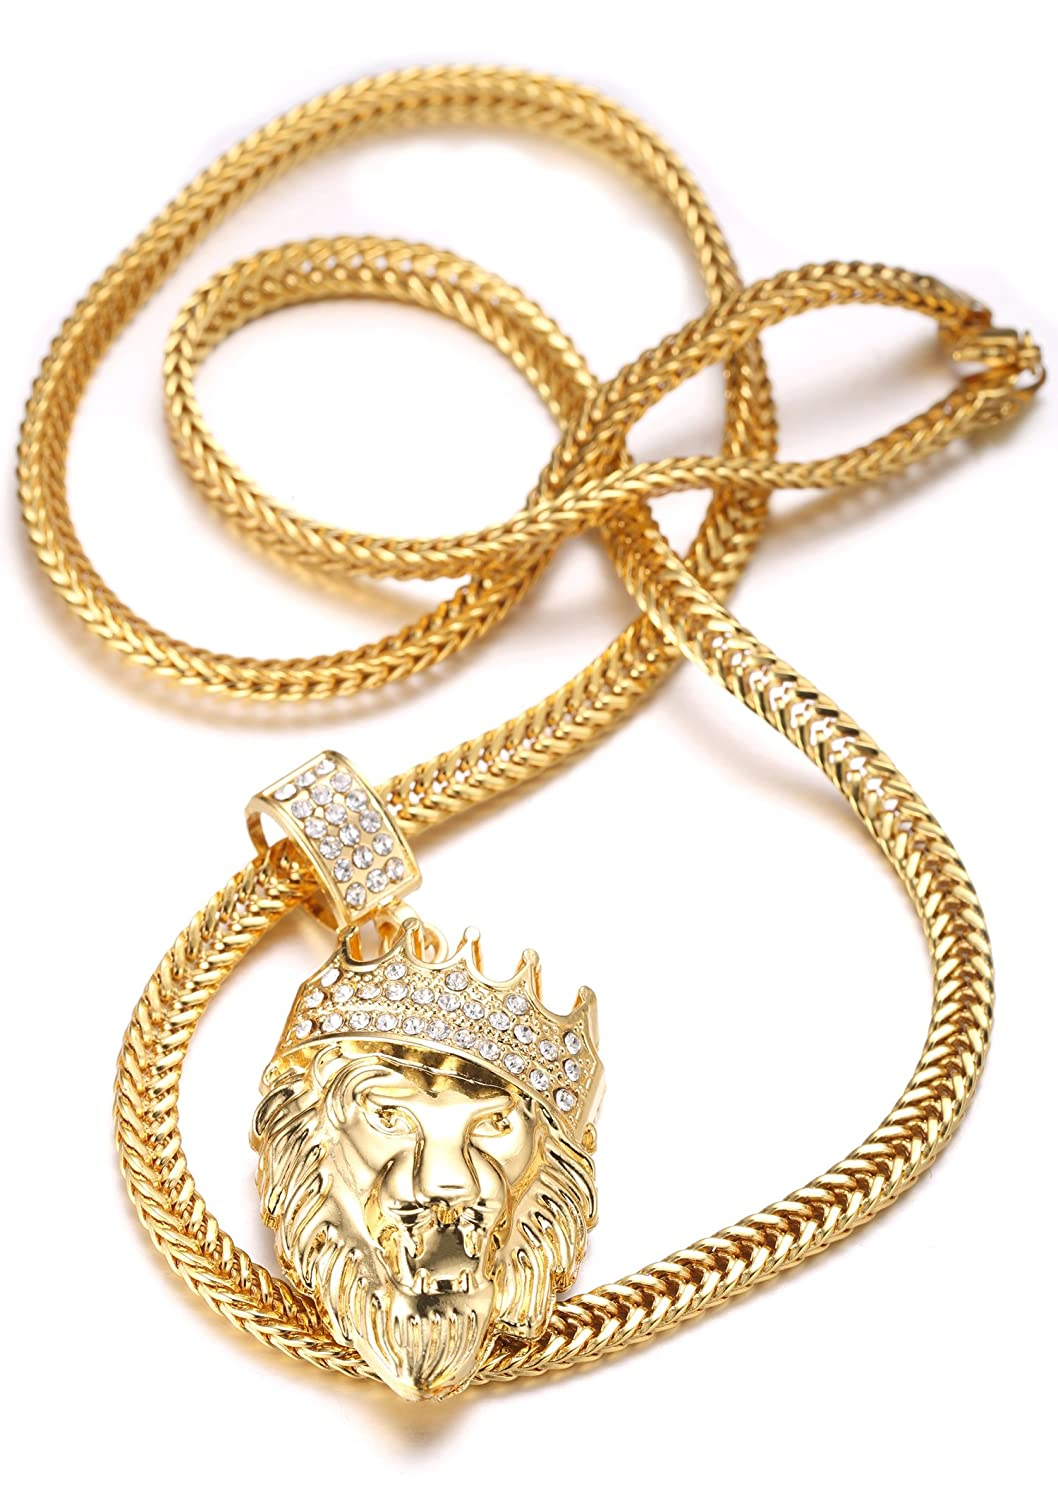 Halukakah mens 18k real gold plated kings landing crown lion halukakah mens 18k real gold plated kings landing crown lion pendant necklacecz inlaywith free fishtail chain 30 amazon jewellery aloadofball